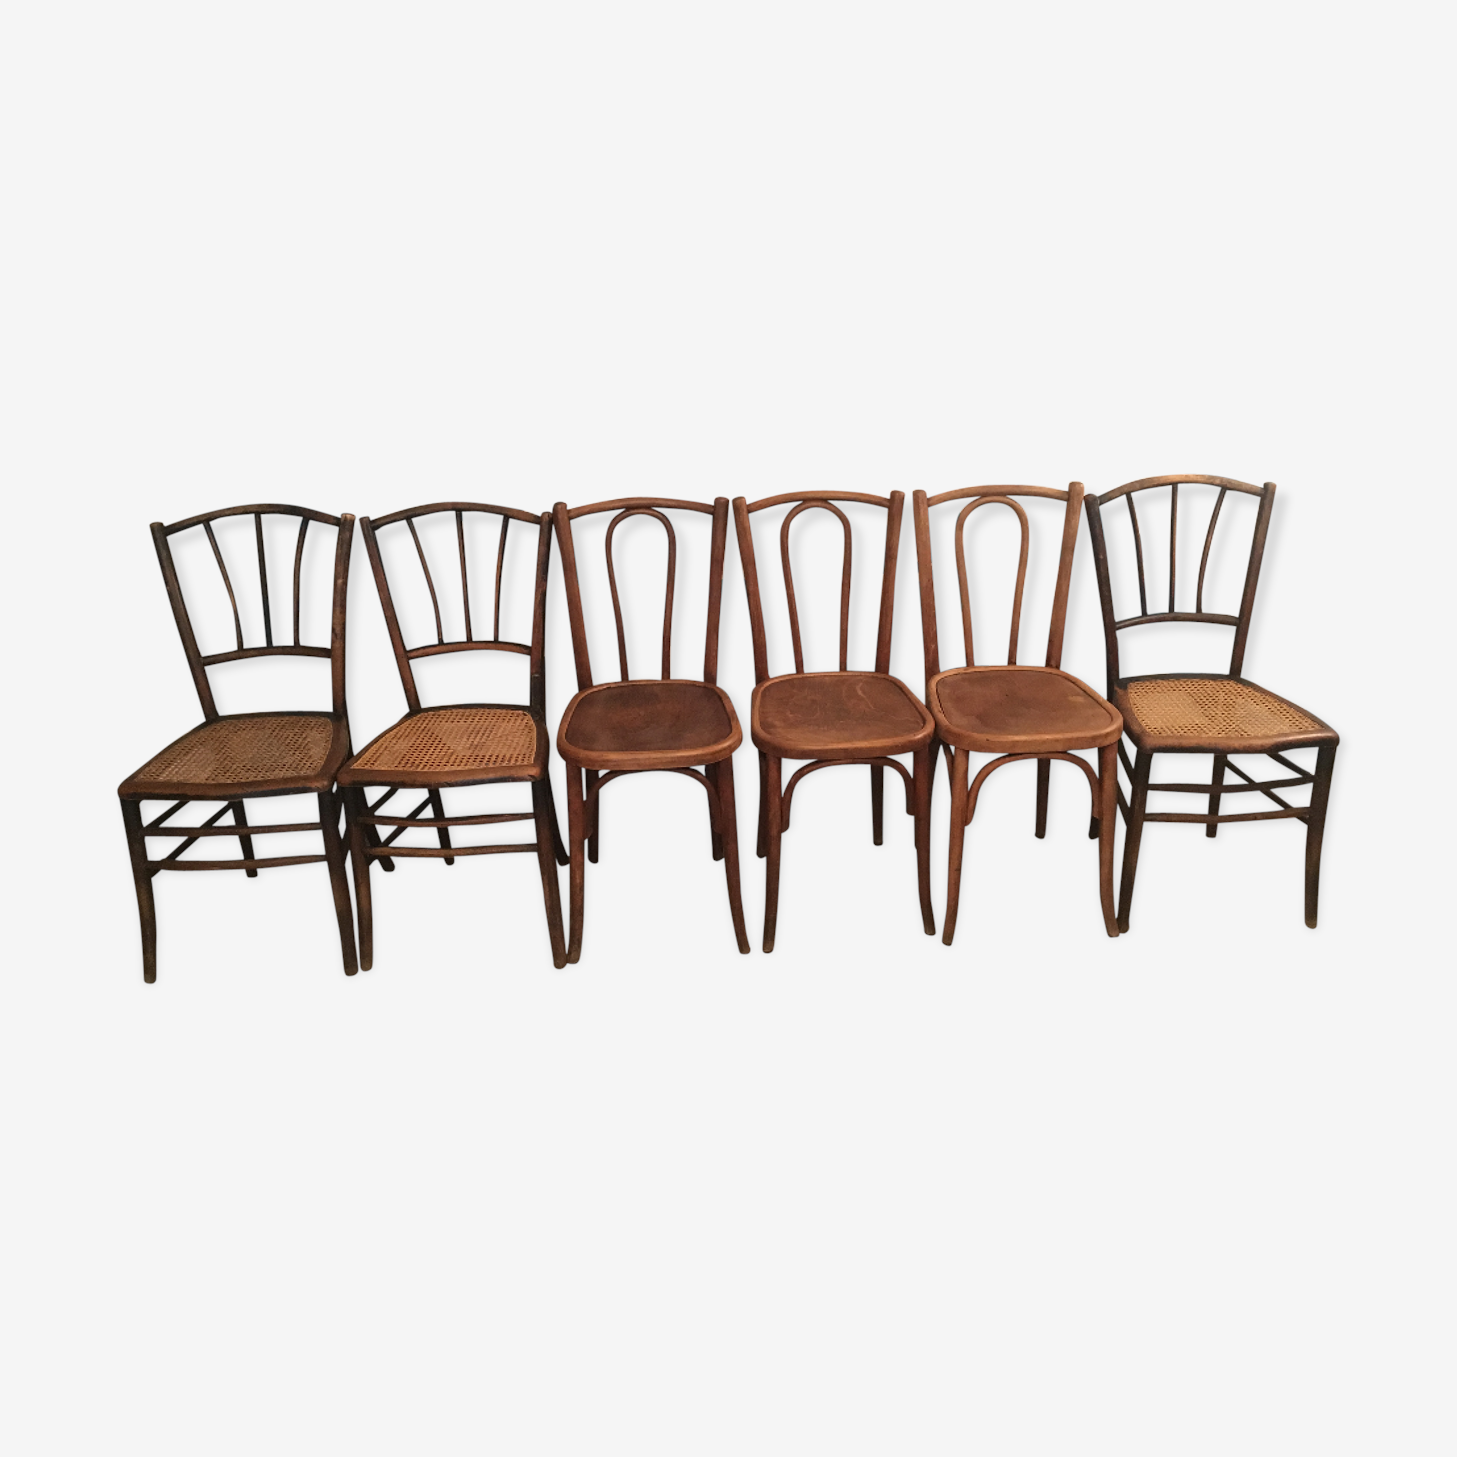 Set of 6 bistro chairs luterma 1900 vintage